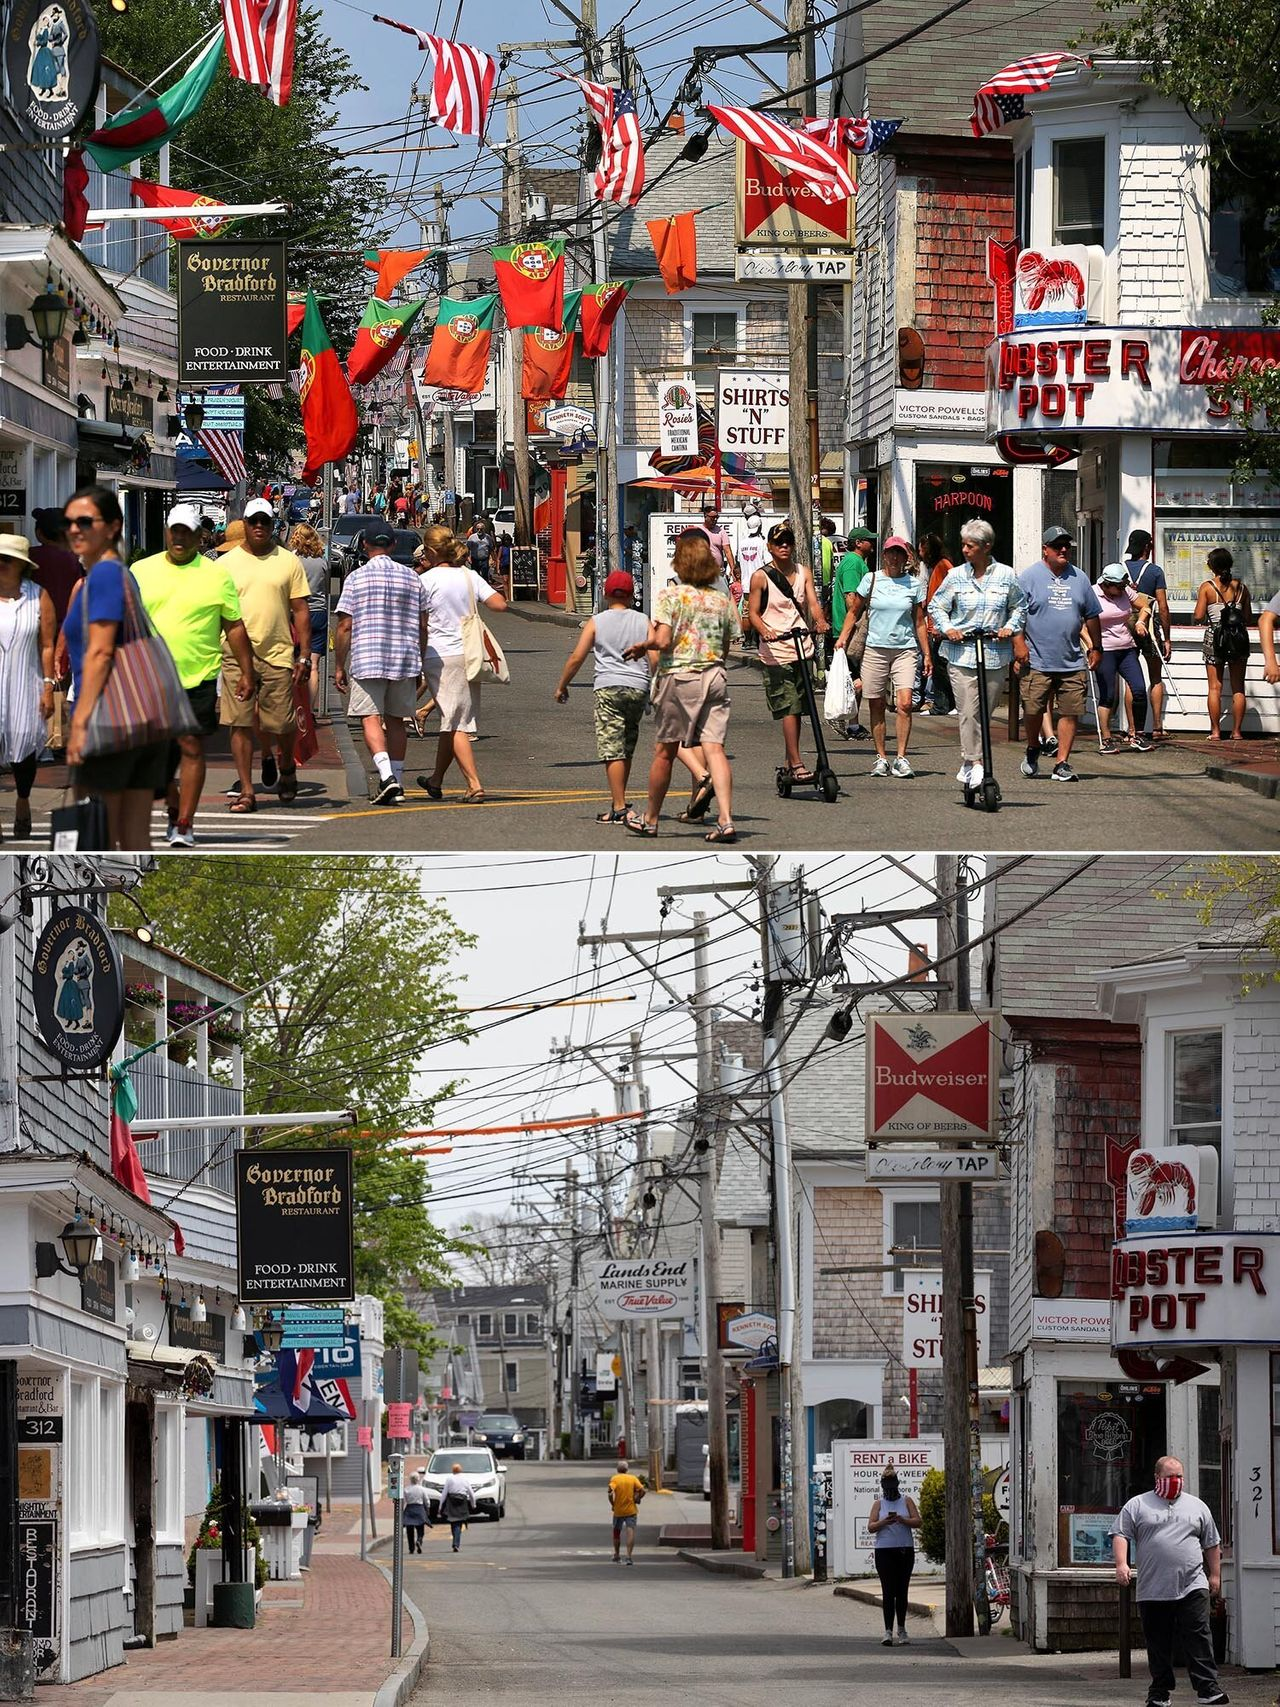 <strong>Top image:</strong> Crowds fill Commercial Street on July 10, 2019. <strong>Bottom image:</strong> Closed stores line the usually crowded Commercial Street on May 25, 2020.